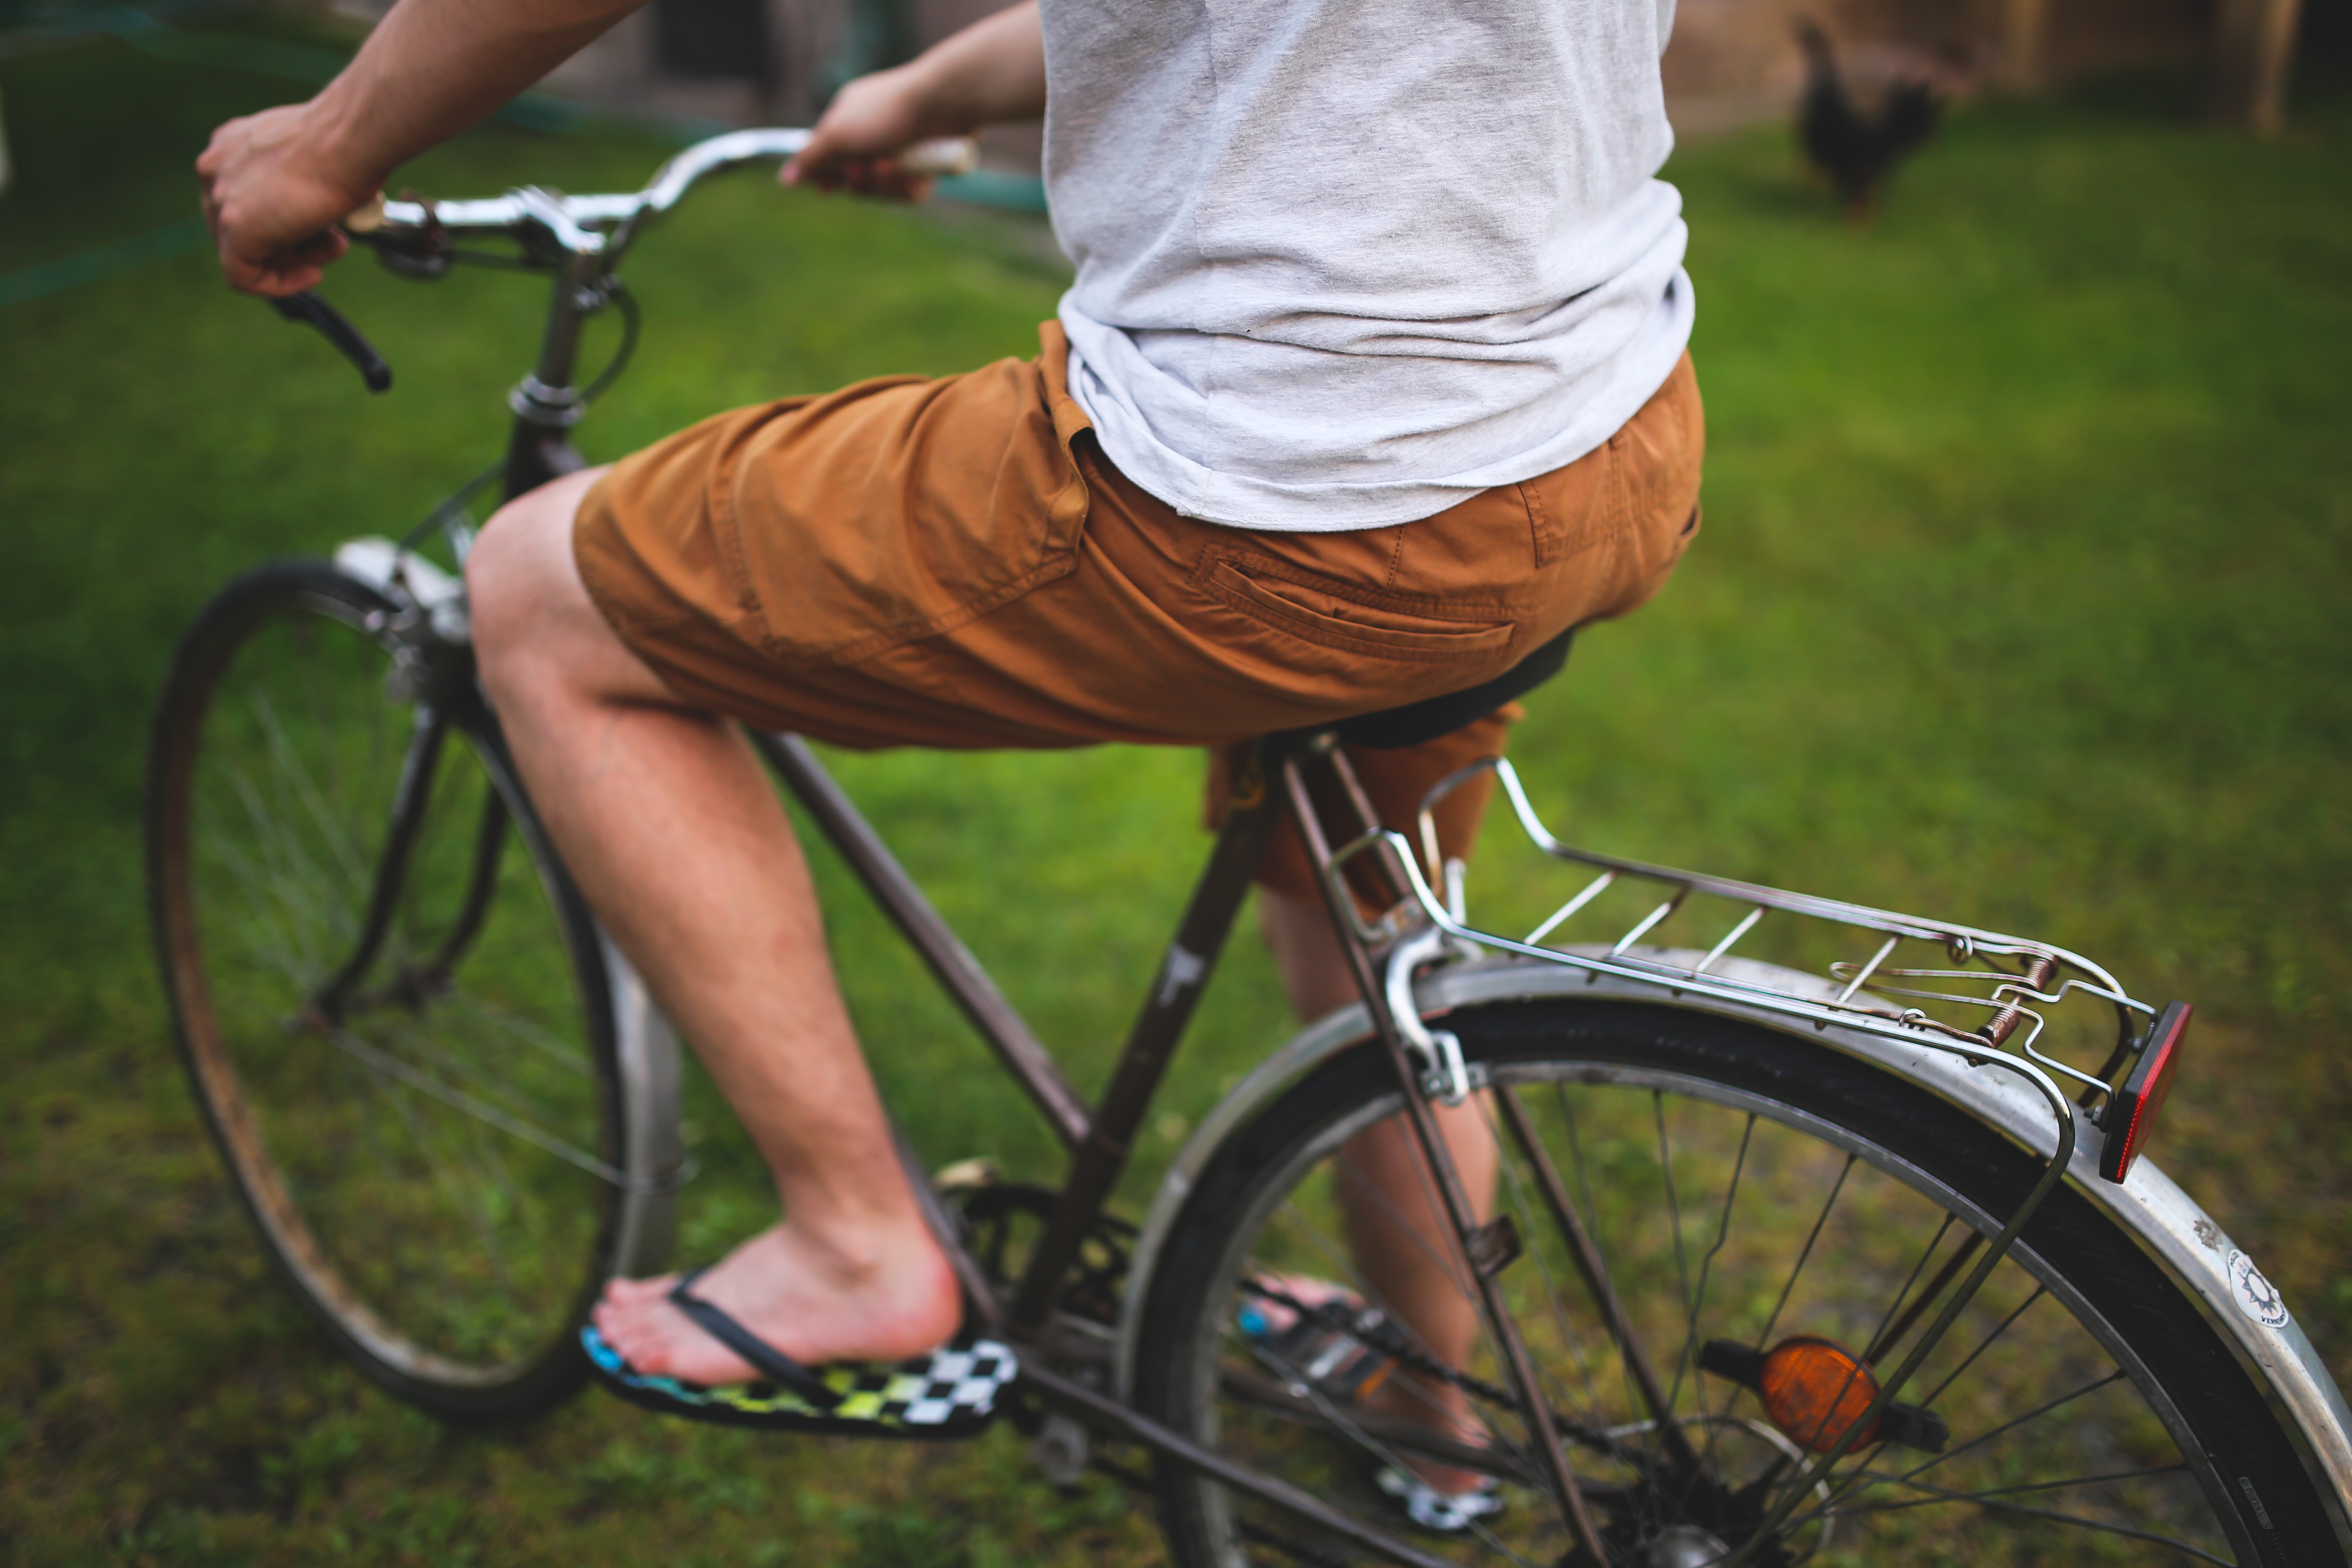 Man Beside Bicycle · Free Stock Photo